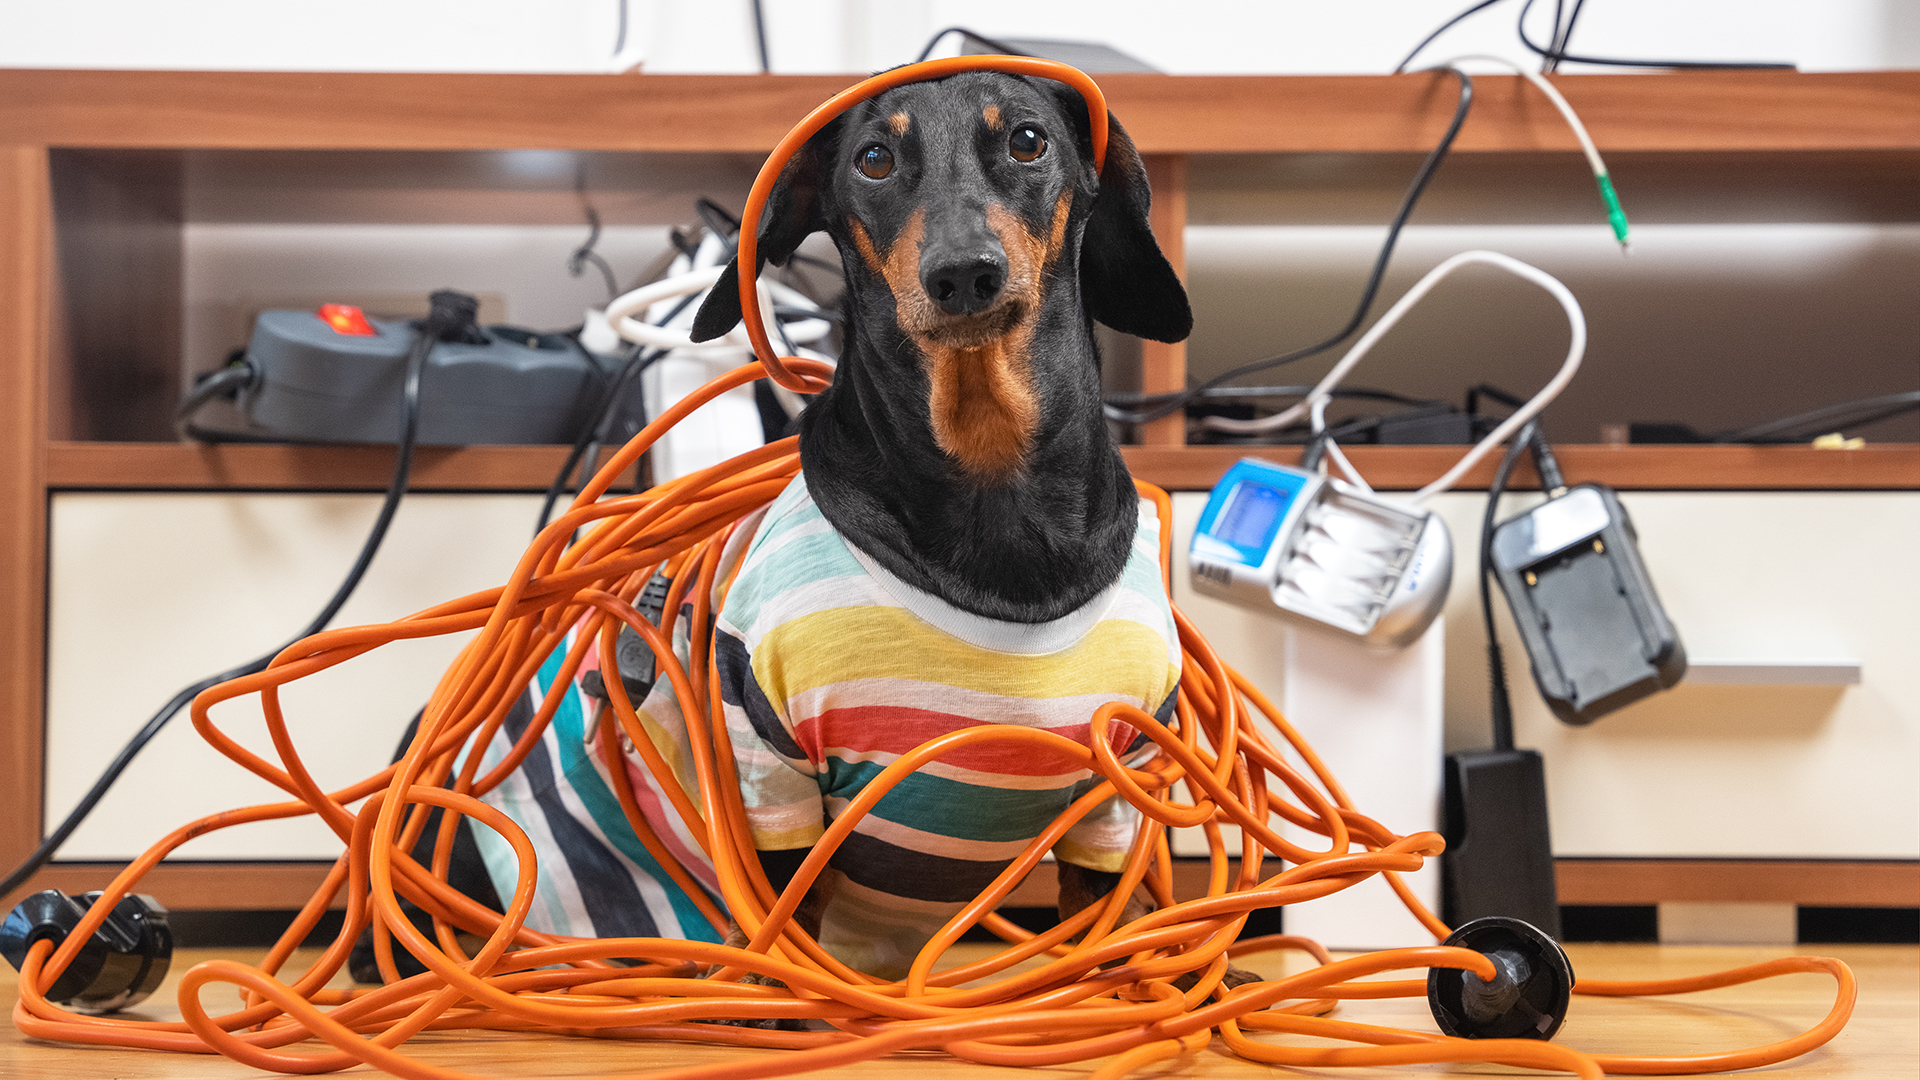 dog-and-cables